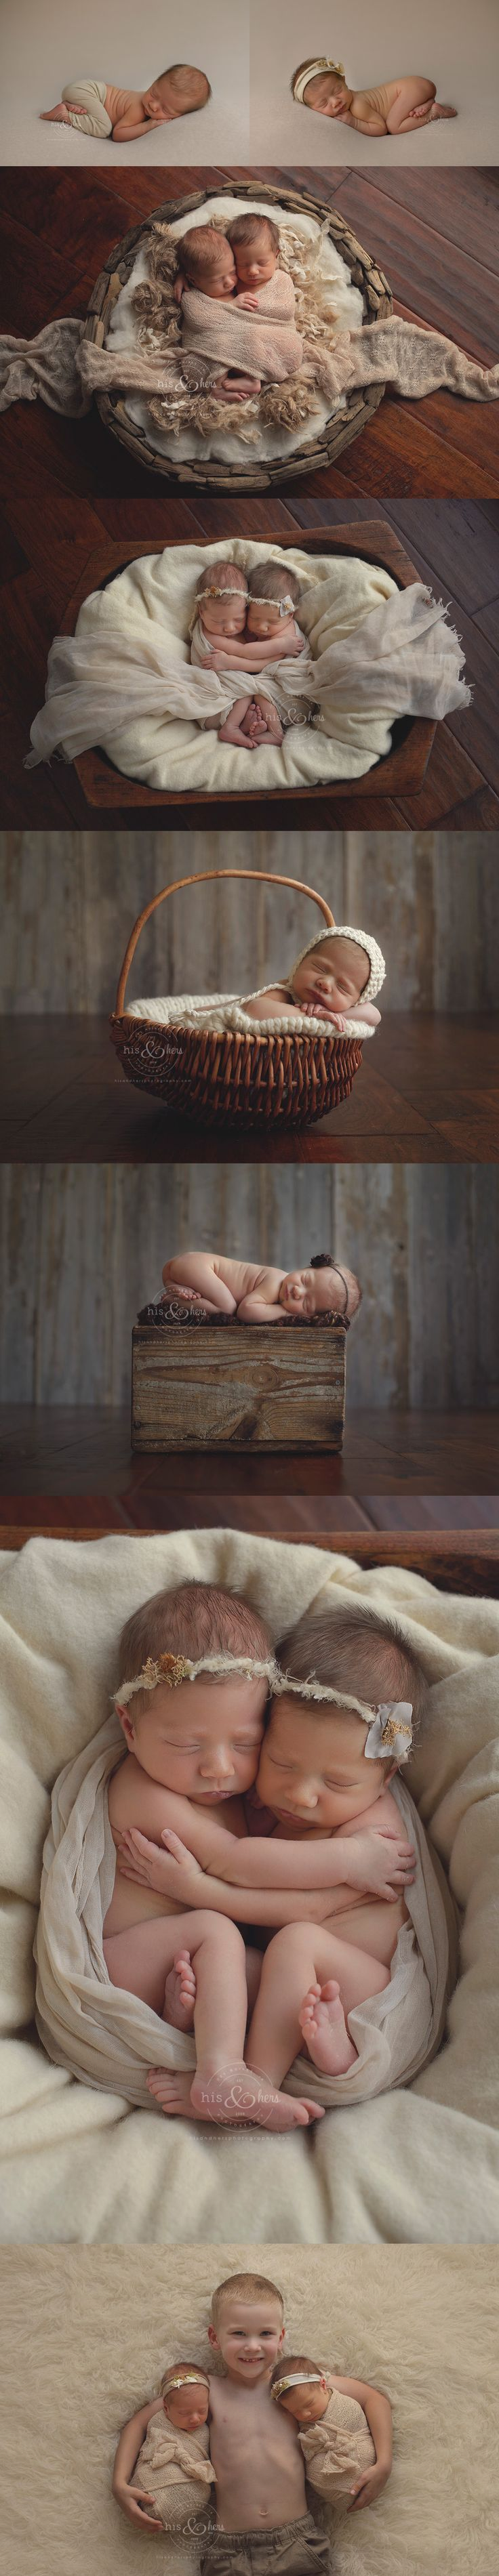 identical twins newborn 10 days new | Newborn photographer, Darcy Milder | His…